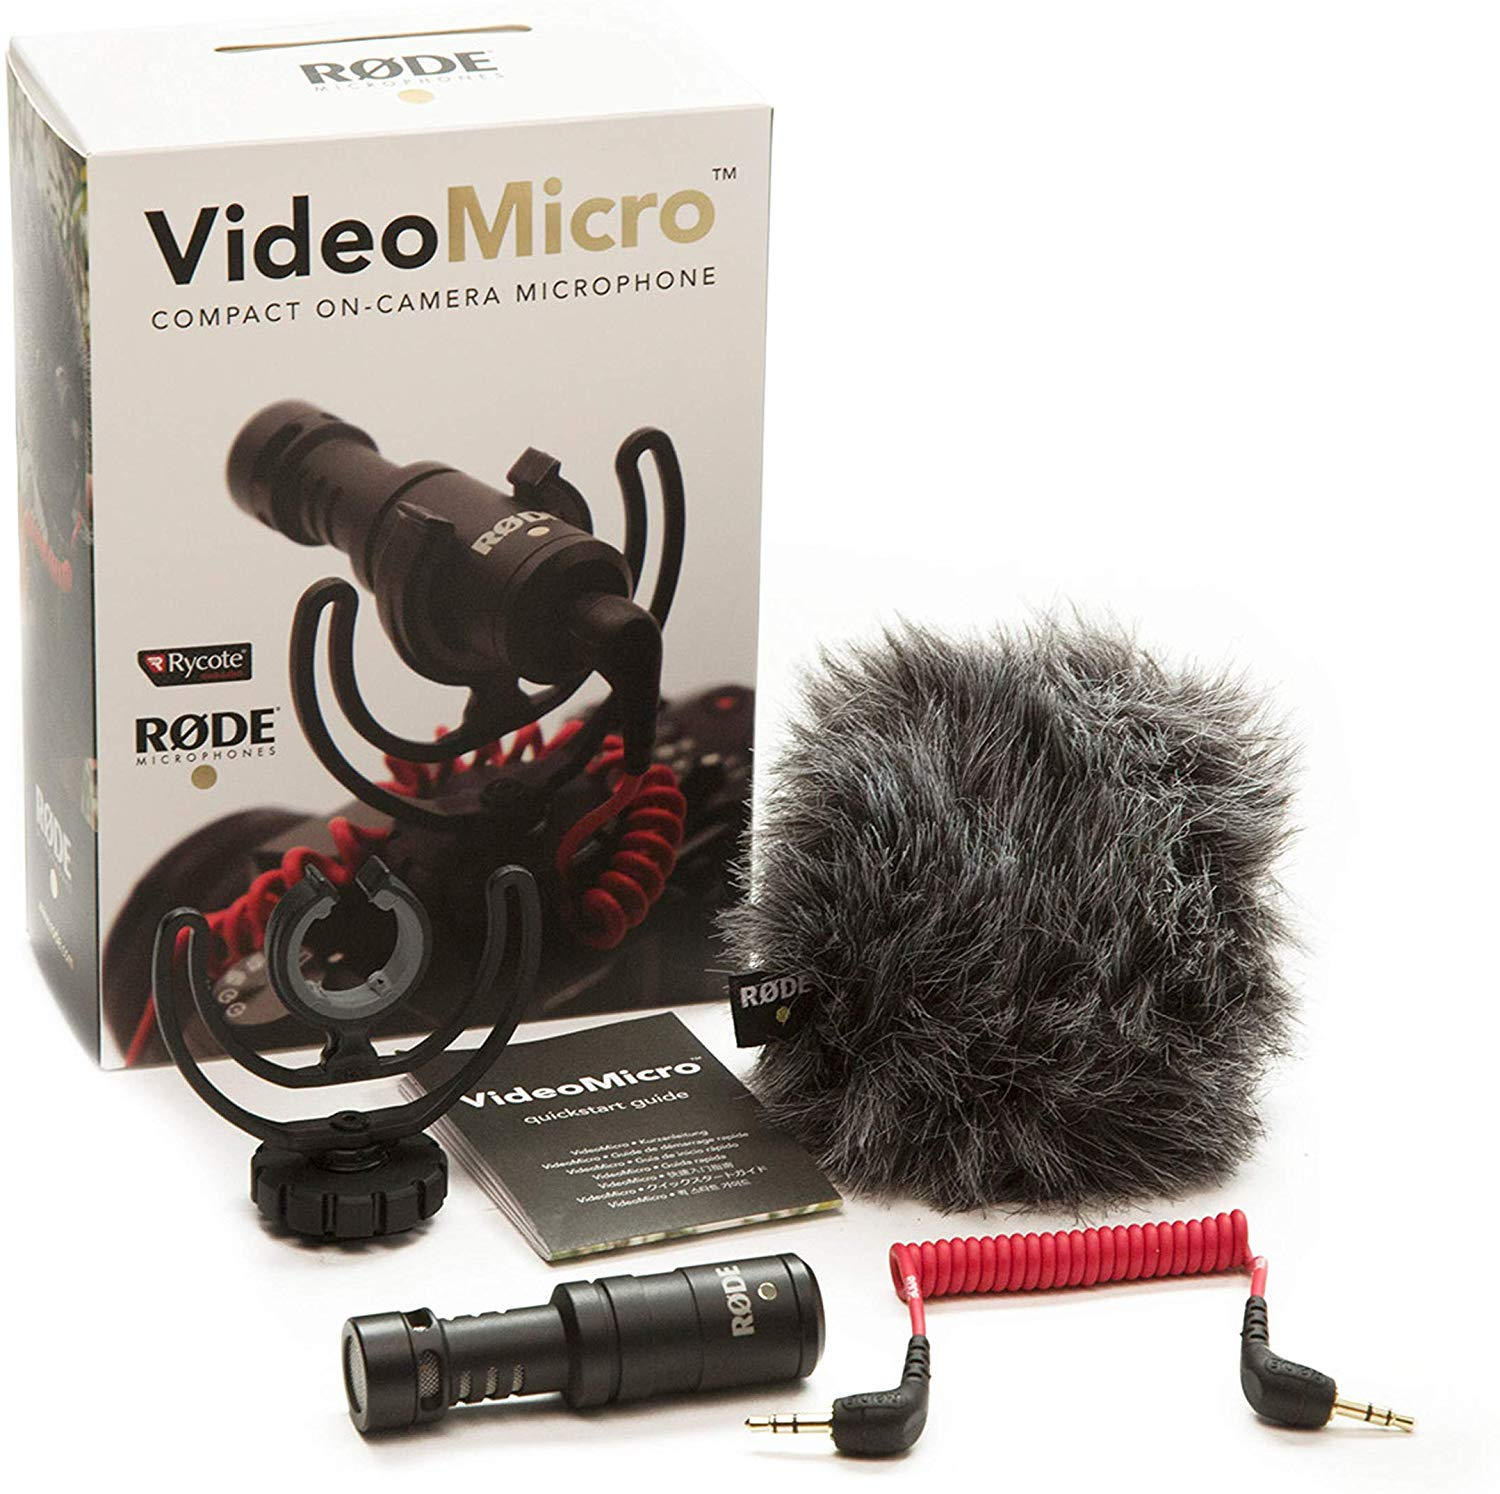 Rhode Video Micro Compact on-Camera Microphone